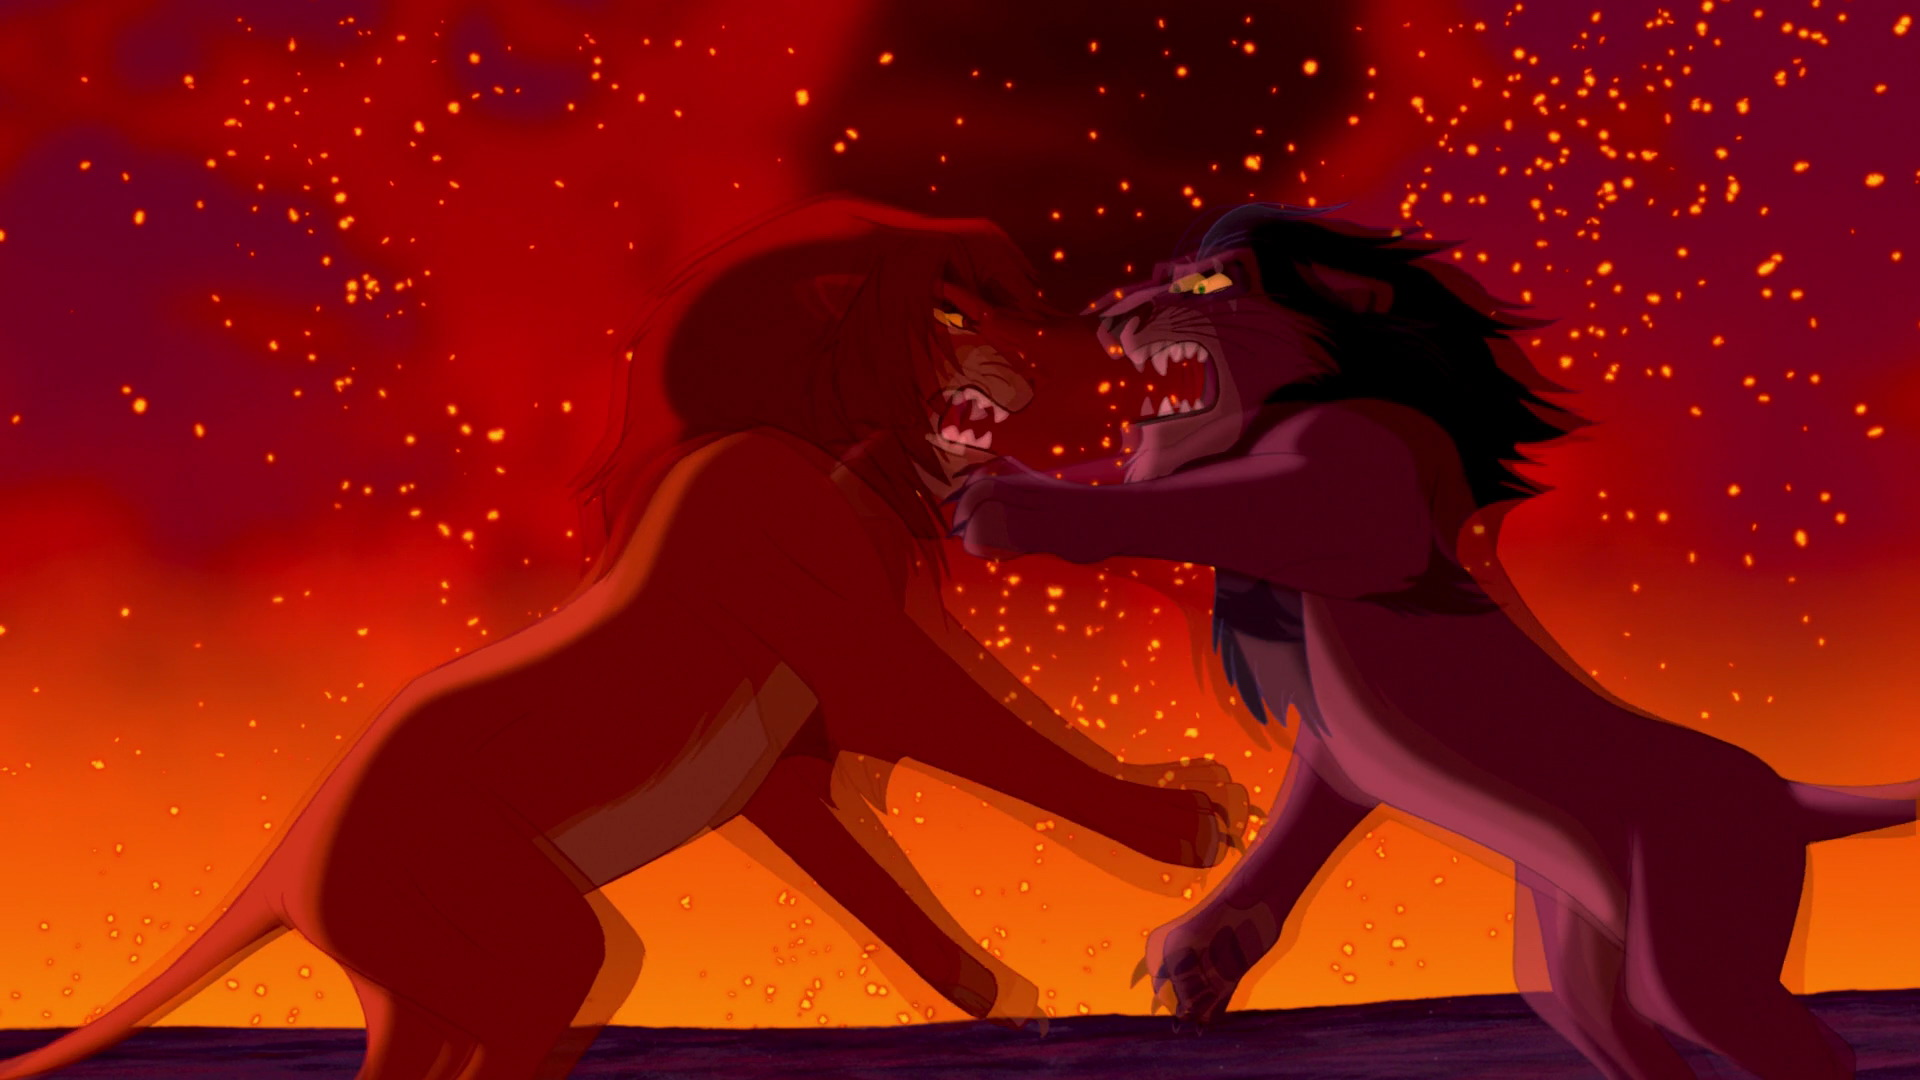 hamlet vs lion king outline The lion king (1994) on imdb: plot summary, synopsis, and more.